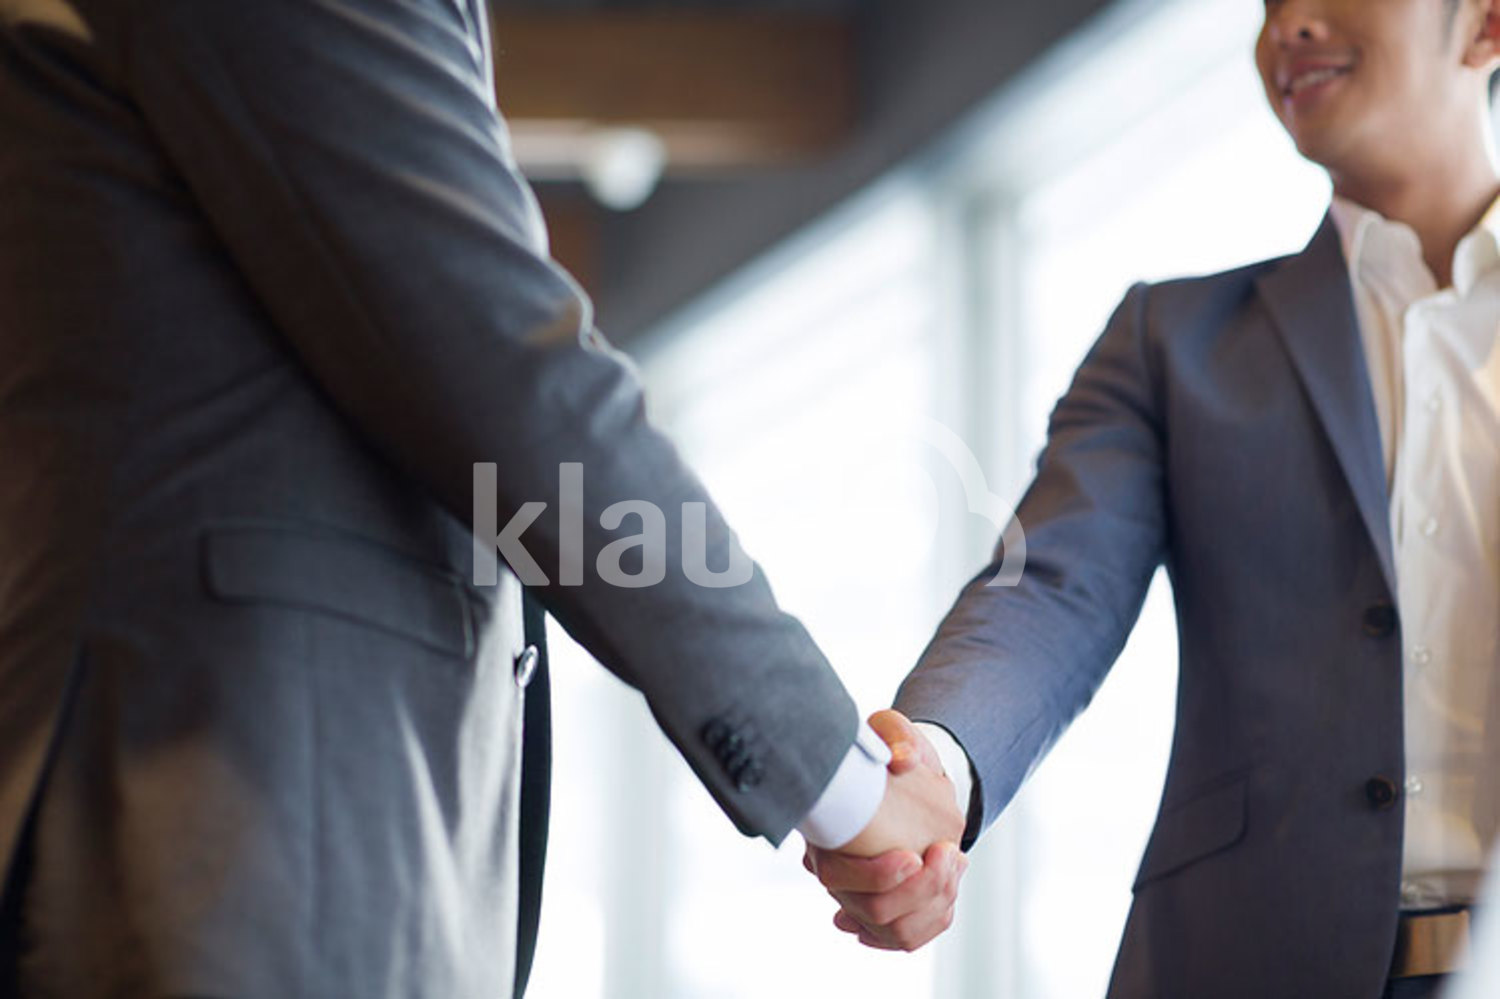 Chinese businessmen shaking hands